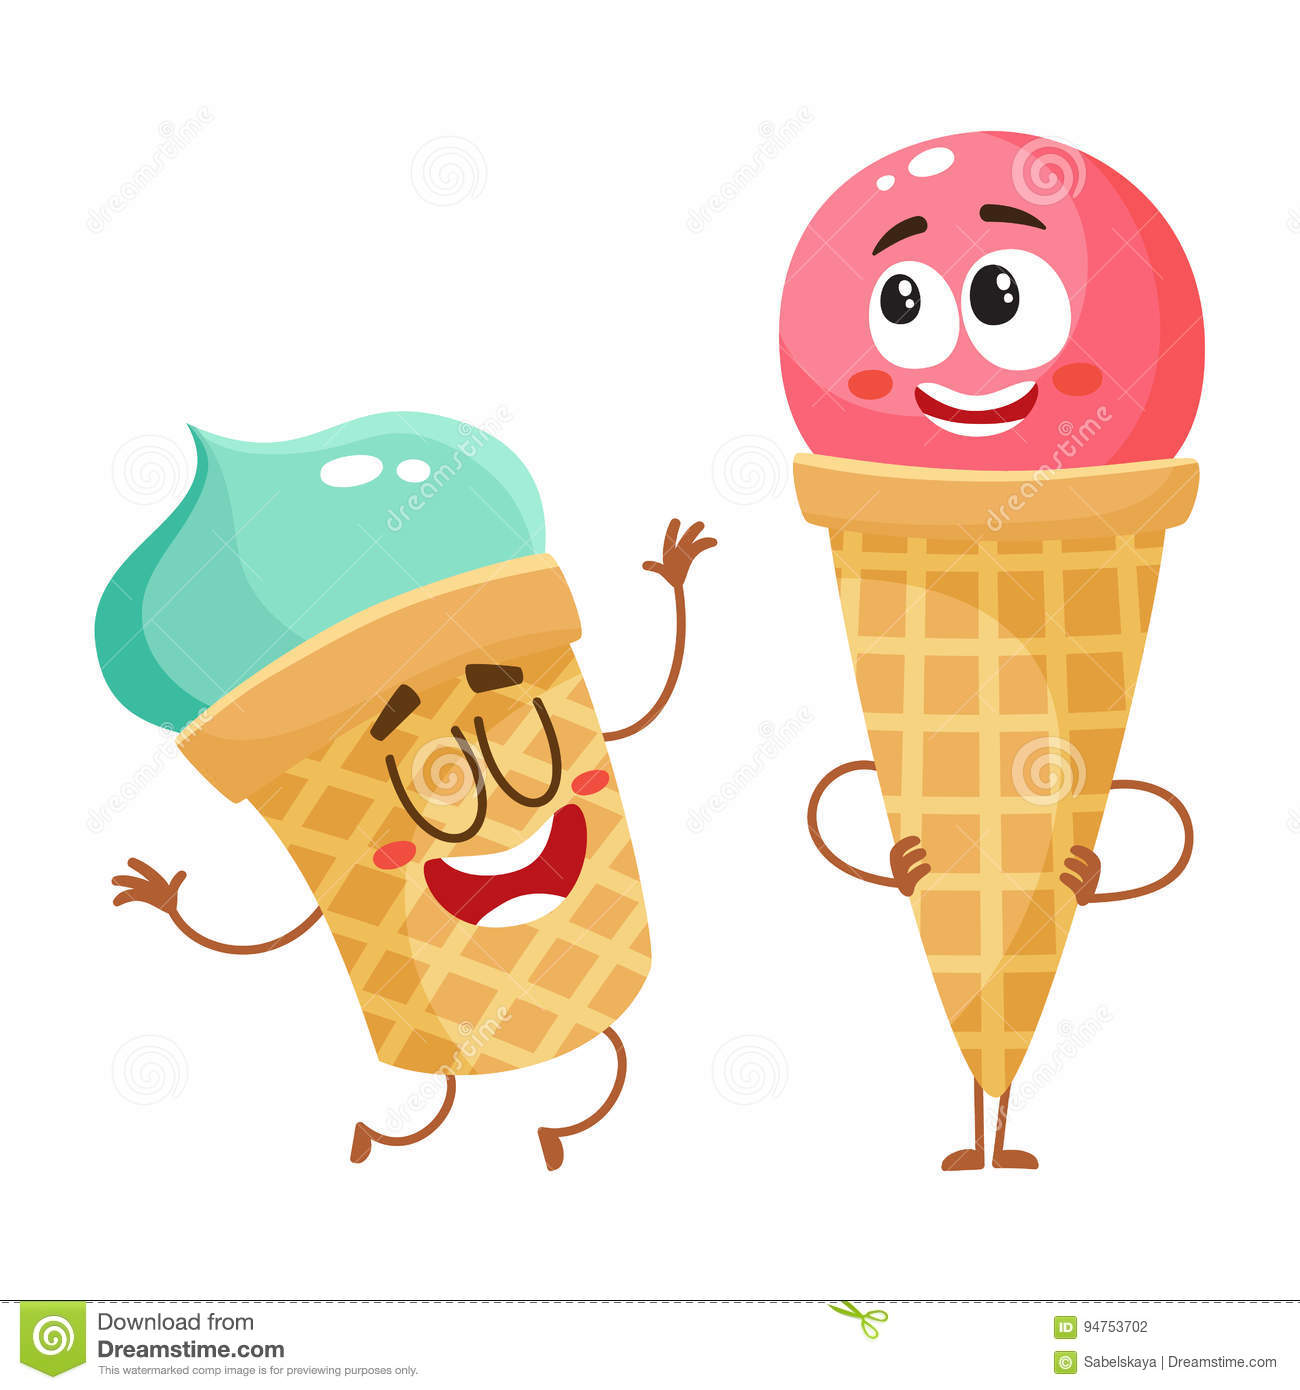 Download Cartoon Ice Cream Wallpaper Gallery: Two Funny Ice Cream Characters